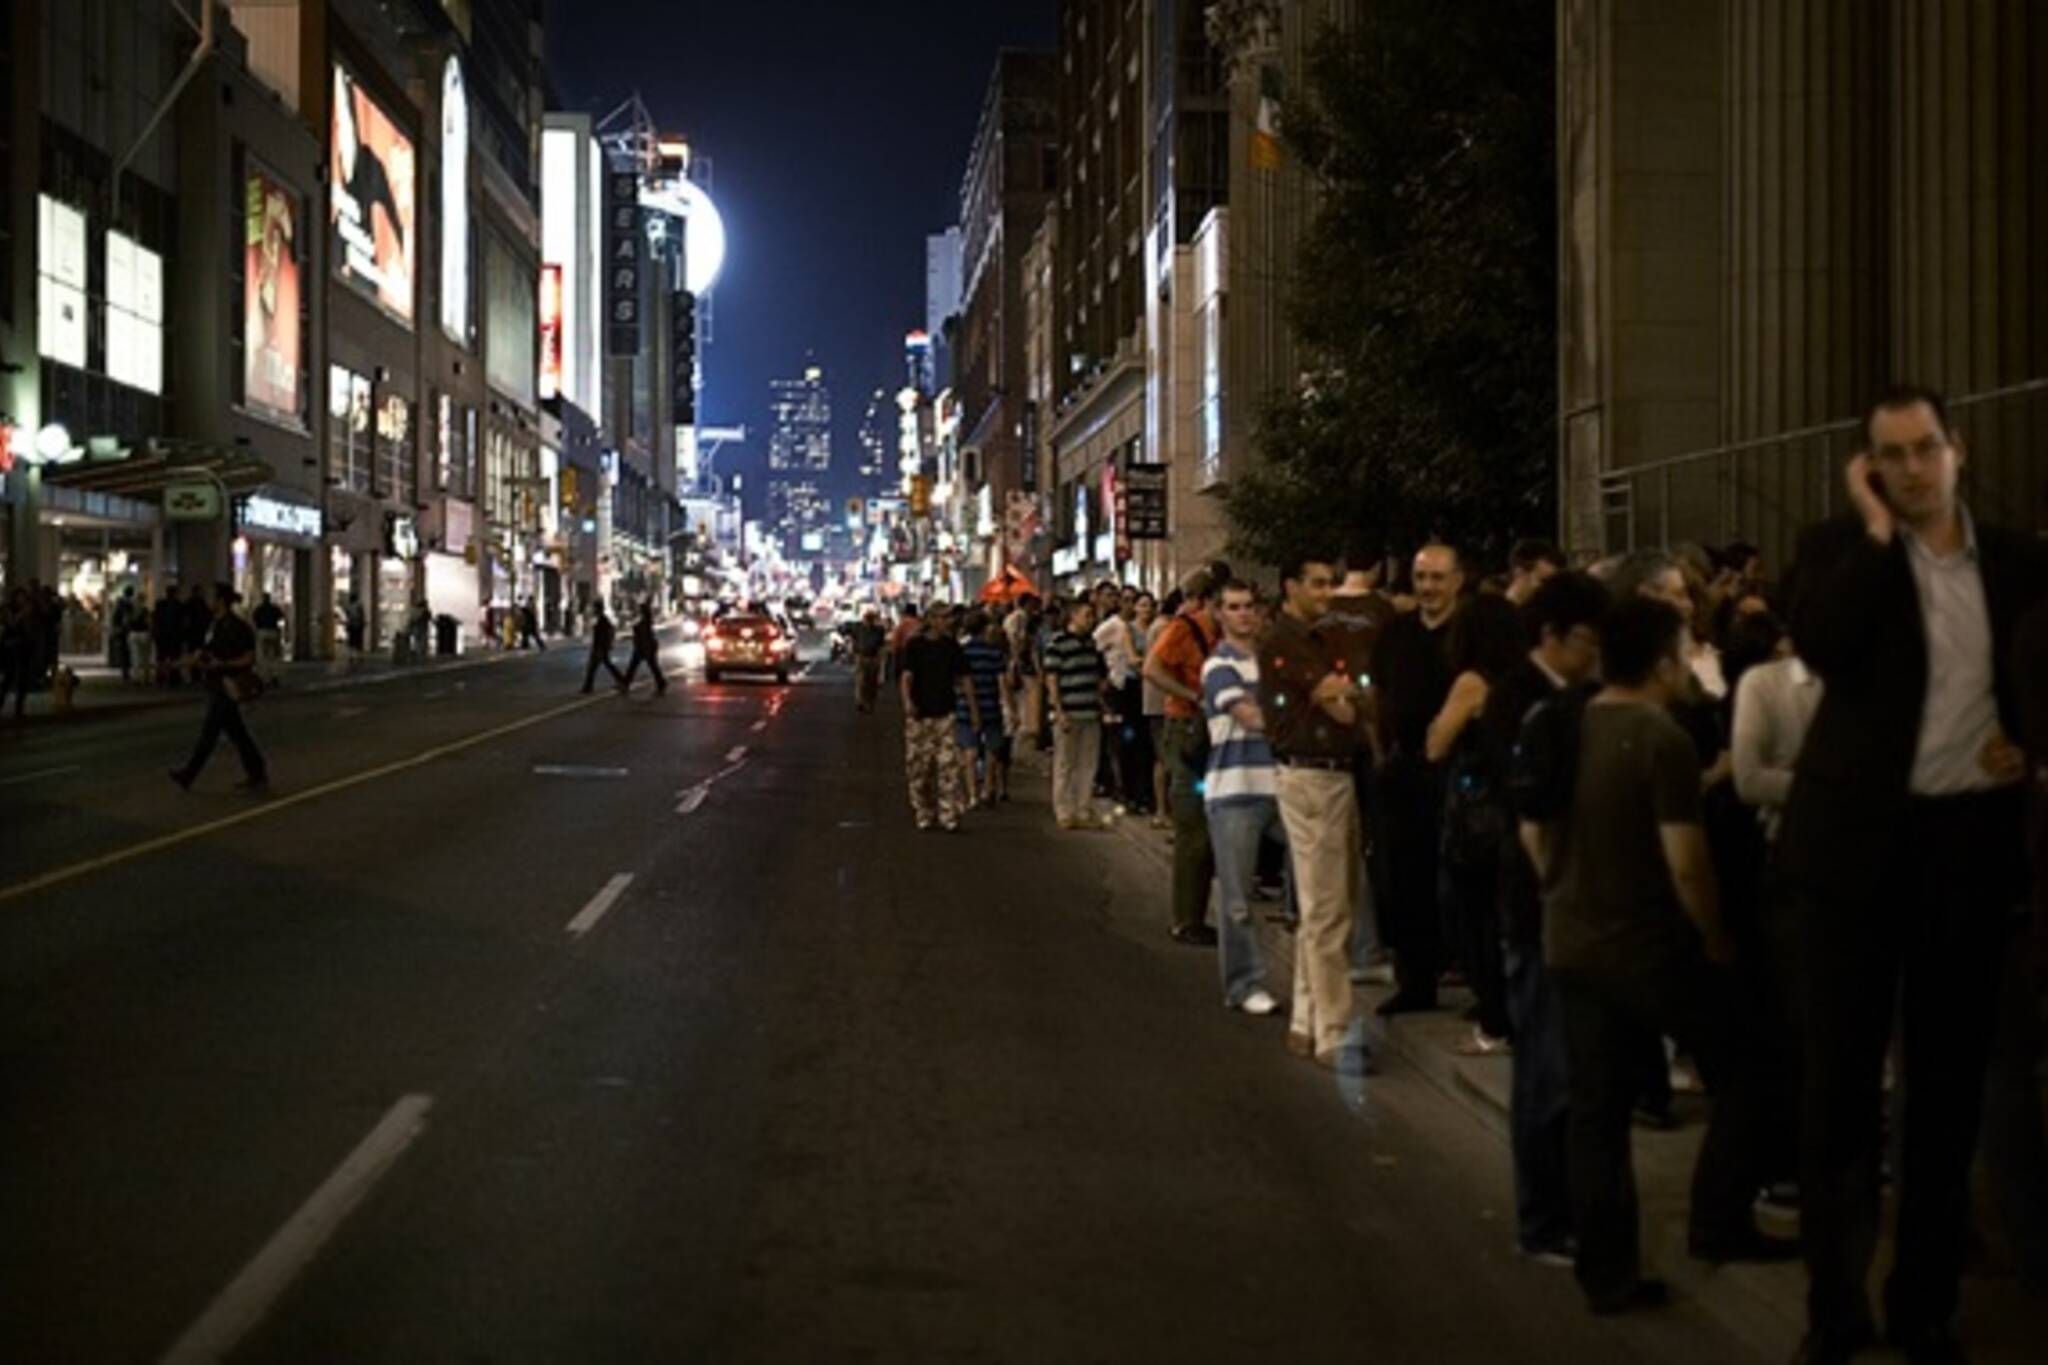 The queue for Persepolis at TIFF